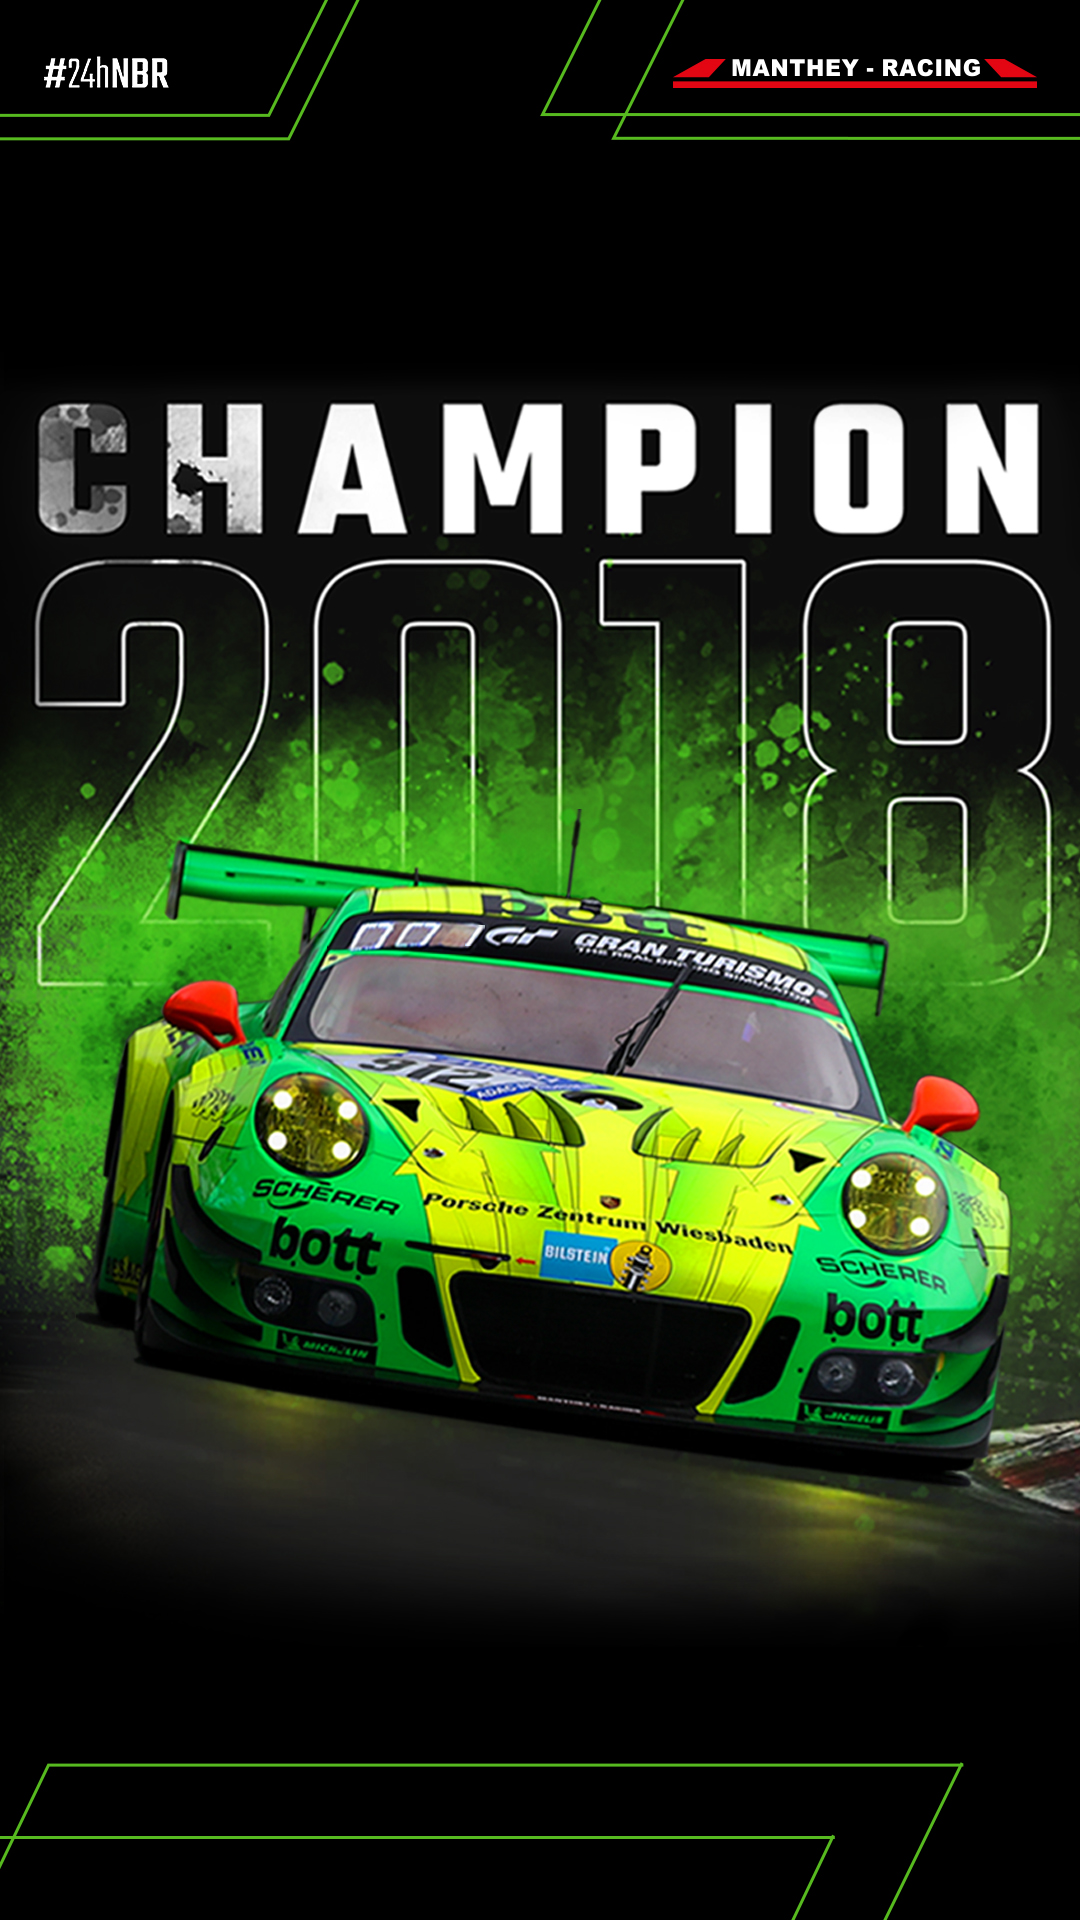 Downloads Wallpaper Iphone 7 8 Plus Manthey Racing